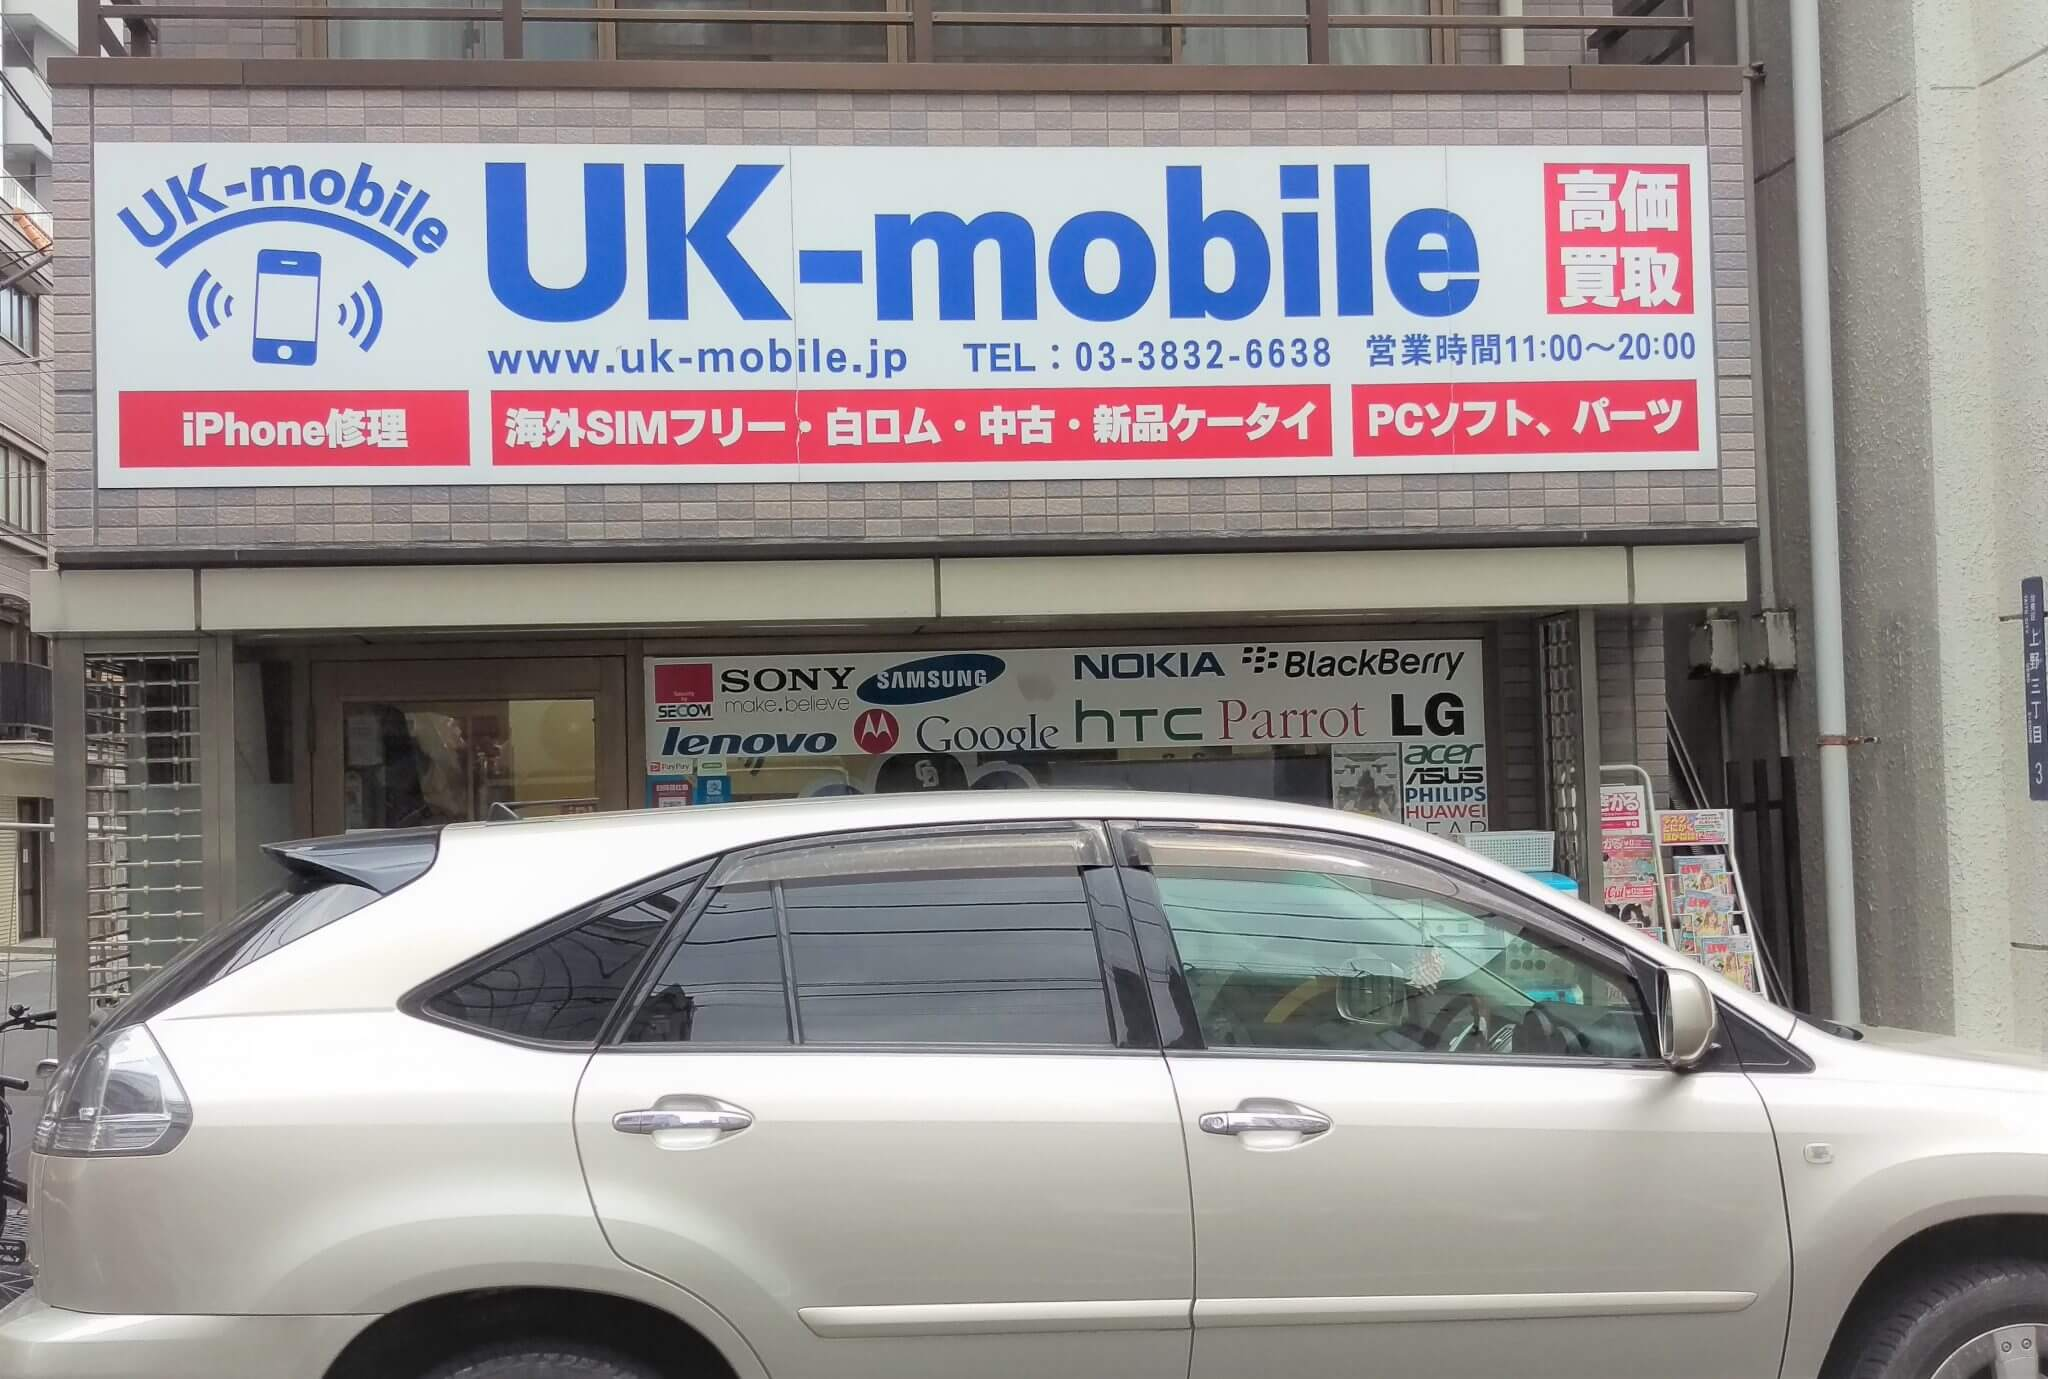 UK-mobile